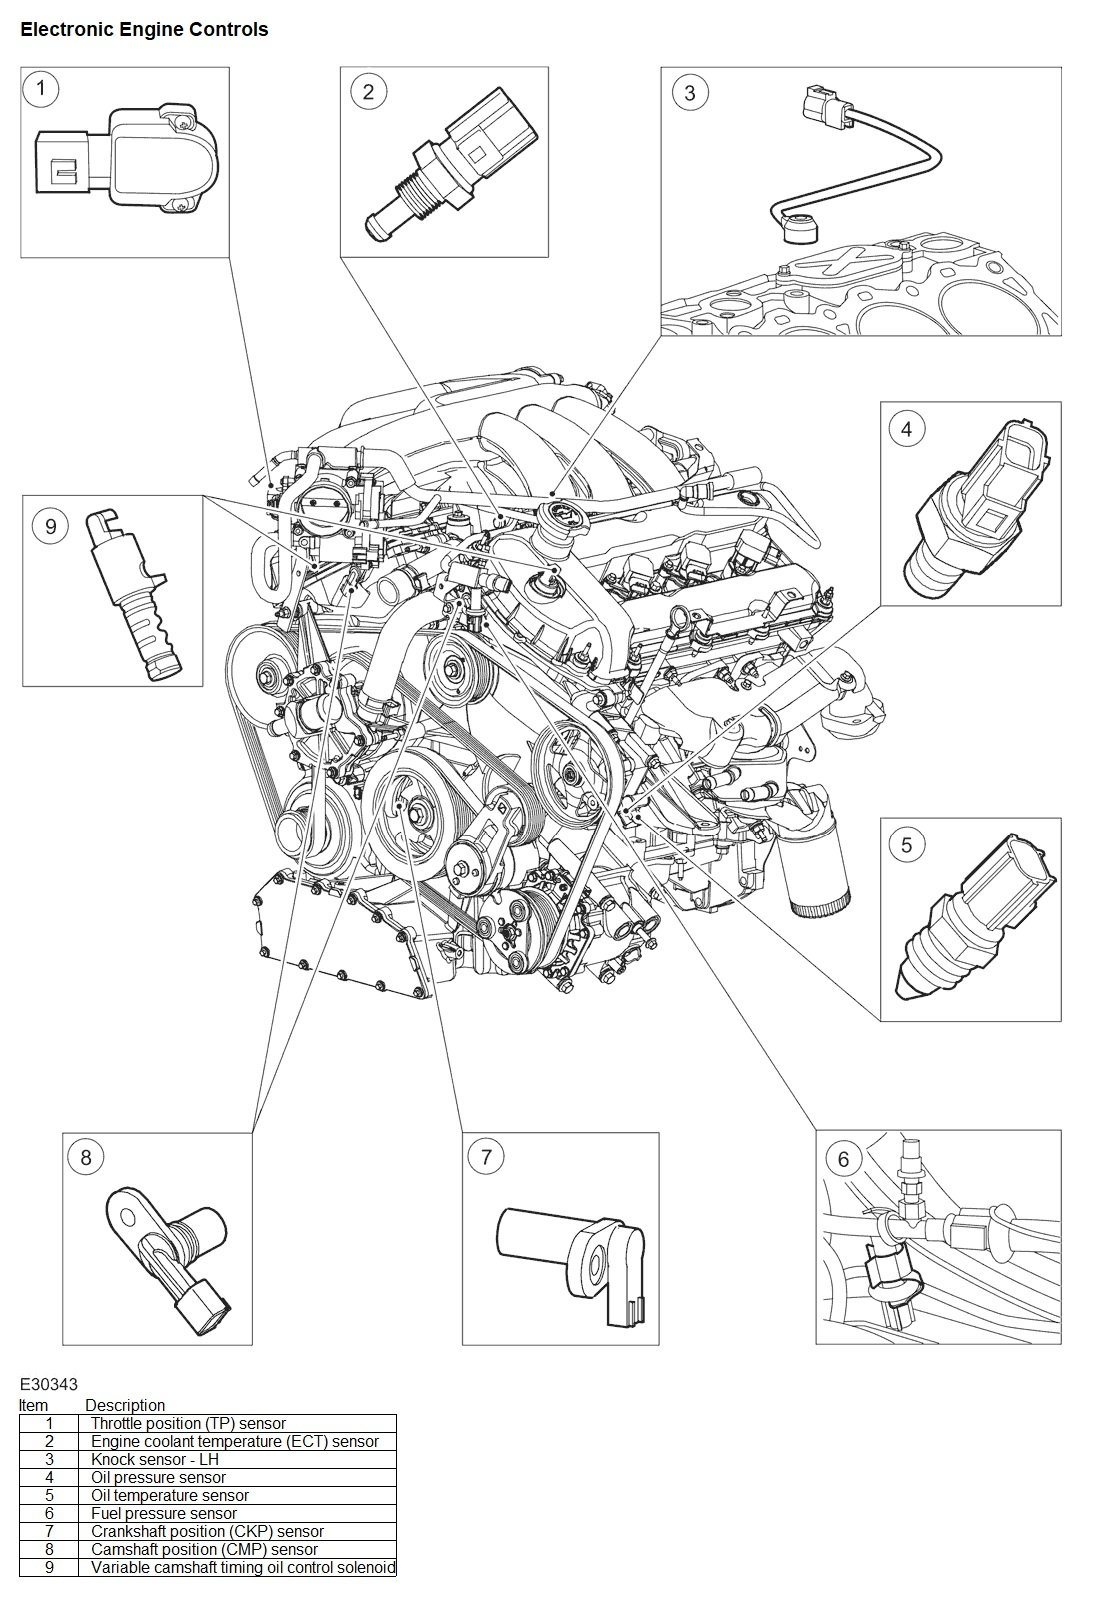 Does anyone know where the crankshaft sensor is located on